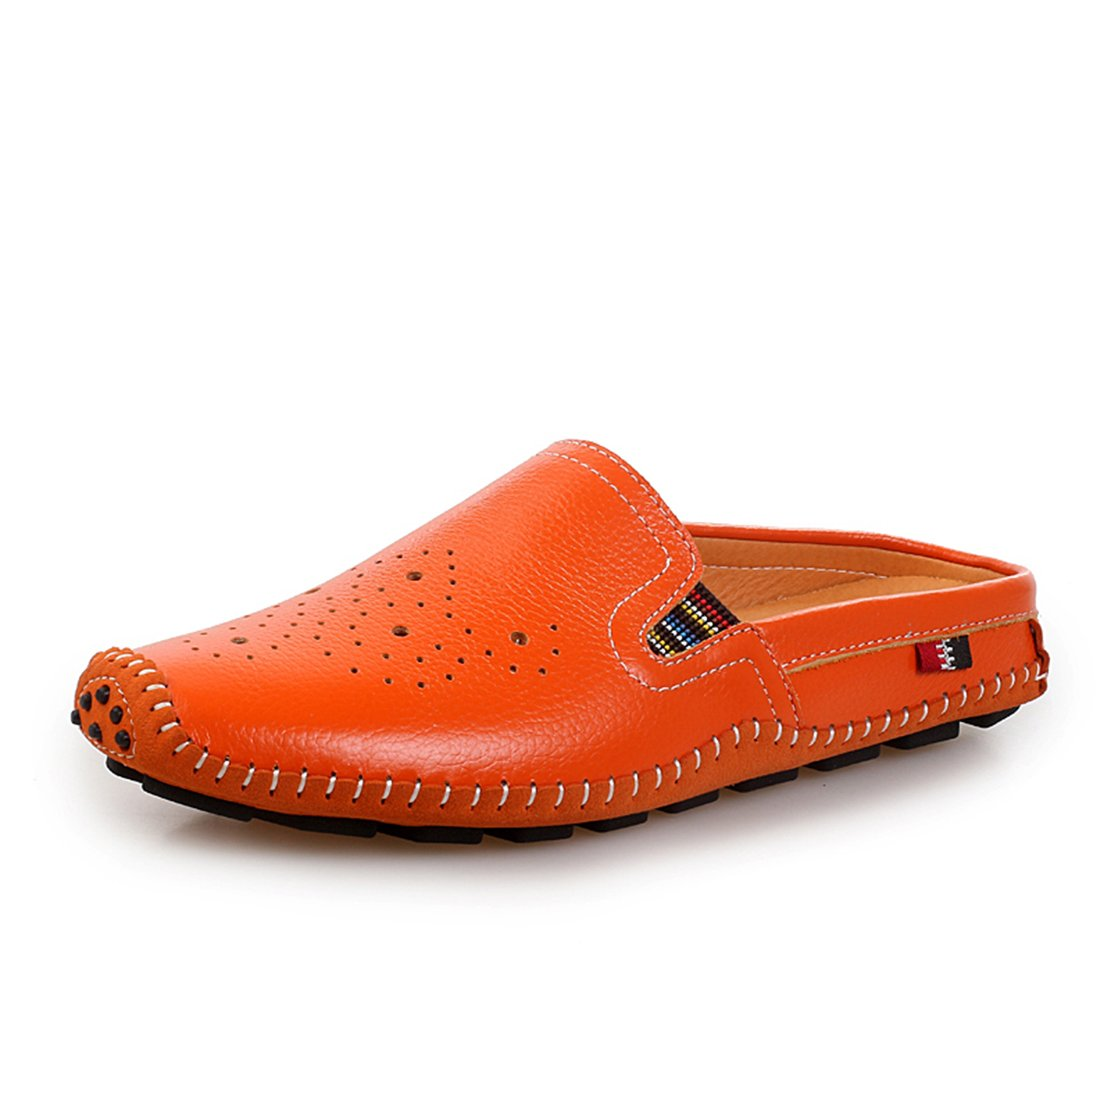 Go Tour Mens Mules Clog Slippers Breathable Punching Leather Slip on Shoes Casual Loafers (43 M EU/9.5 D(M) US, 1 Orange)